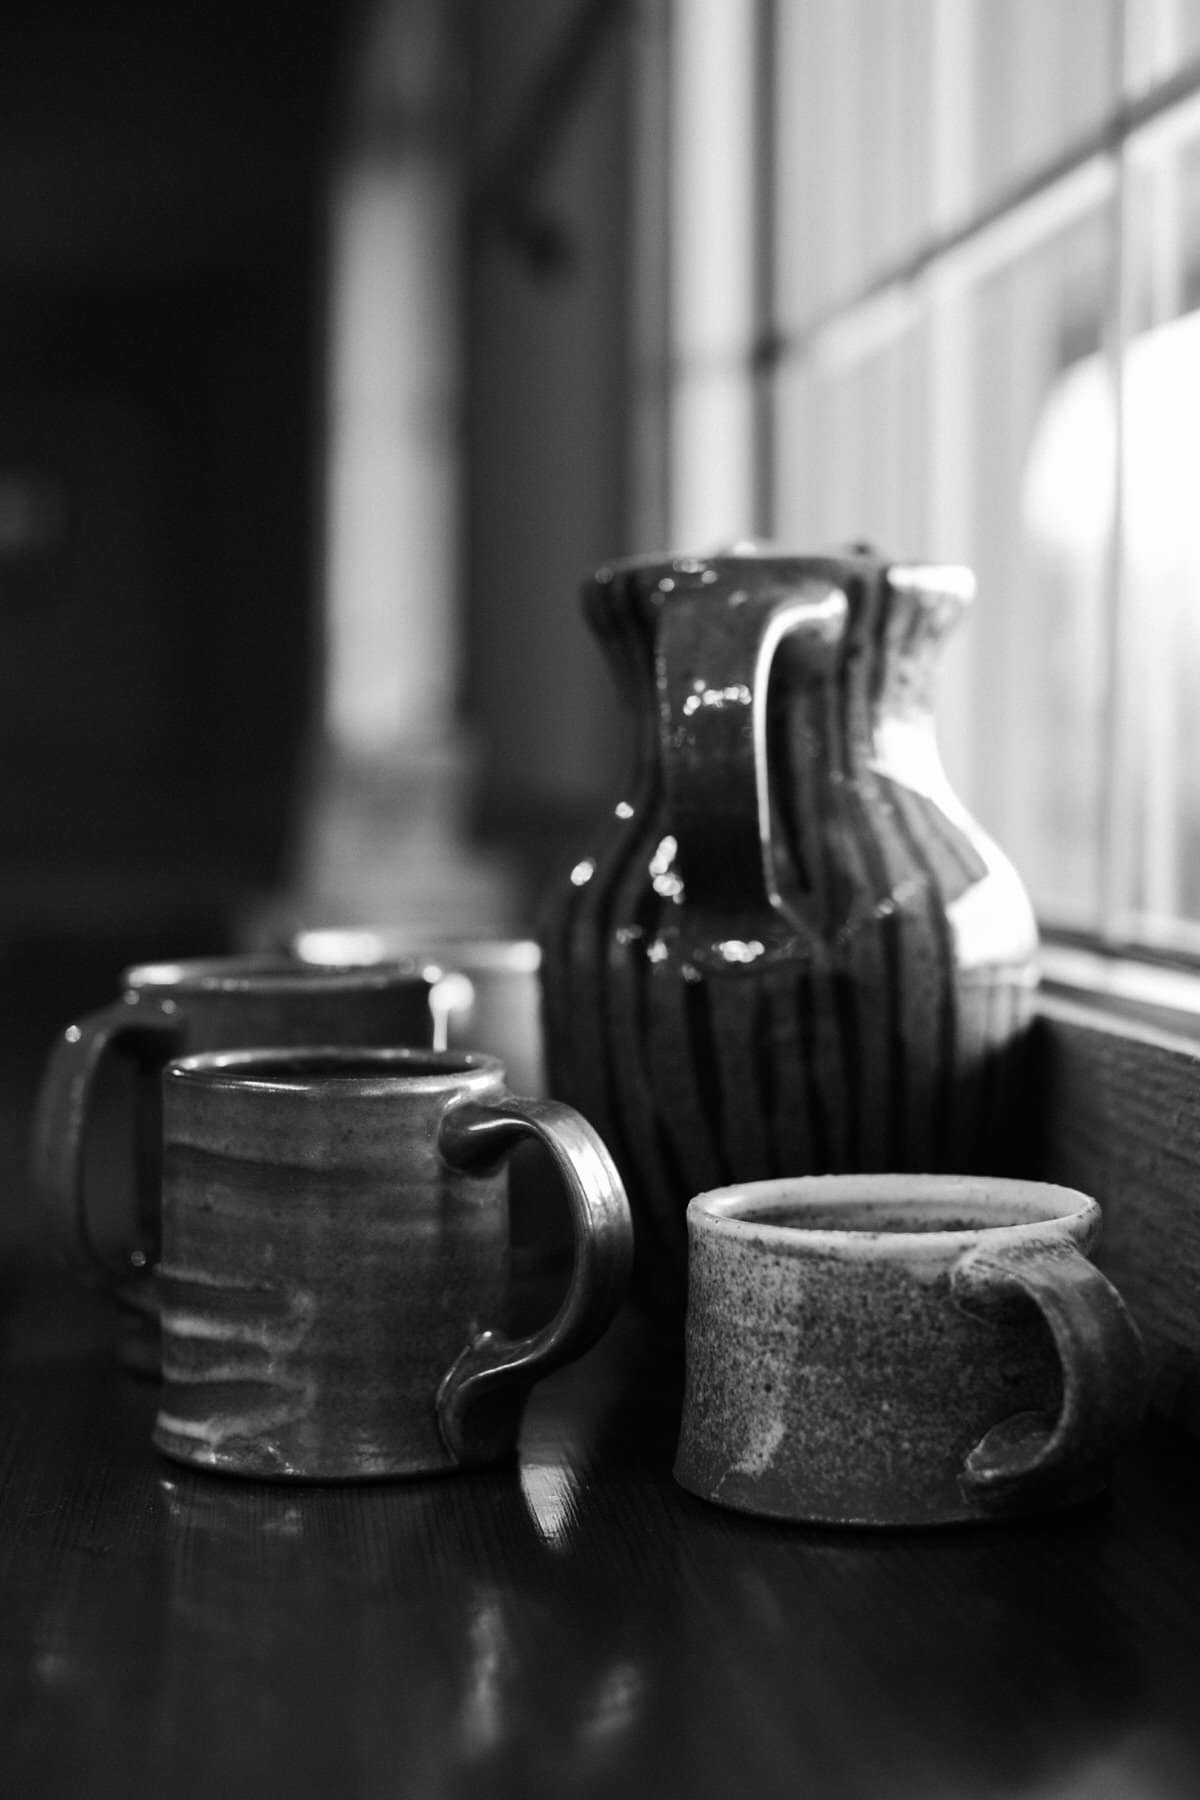 Urban-Fuel-Coffee-Fond-du-Lac-Wisconsin-black-and-white-fine-art-photography-by-Studio-L-photographer-Laura-Schneider-_2737